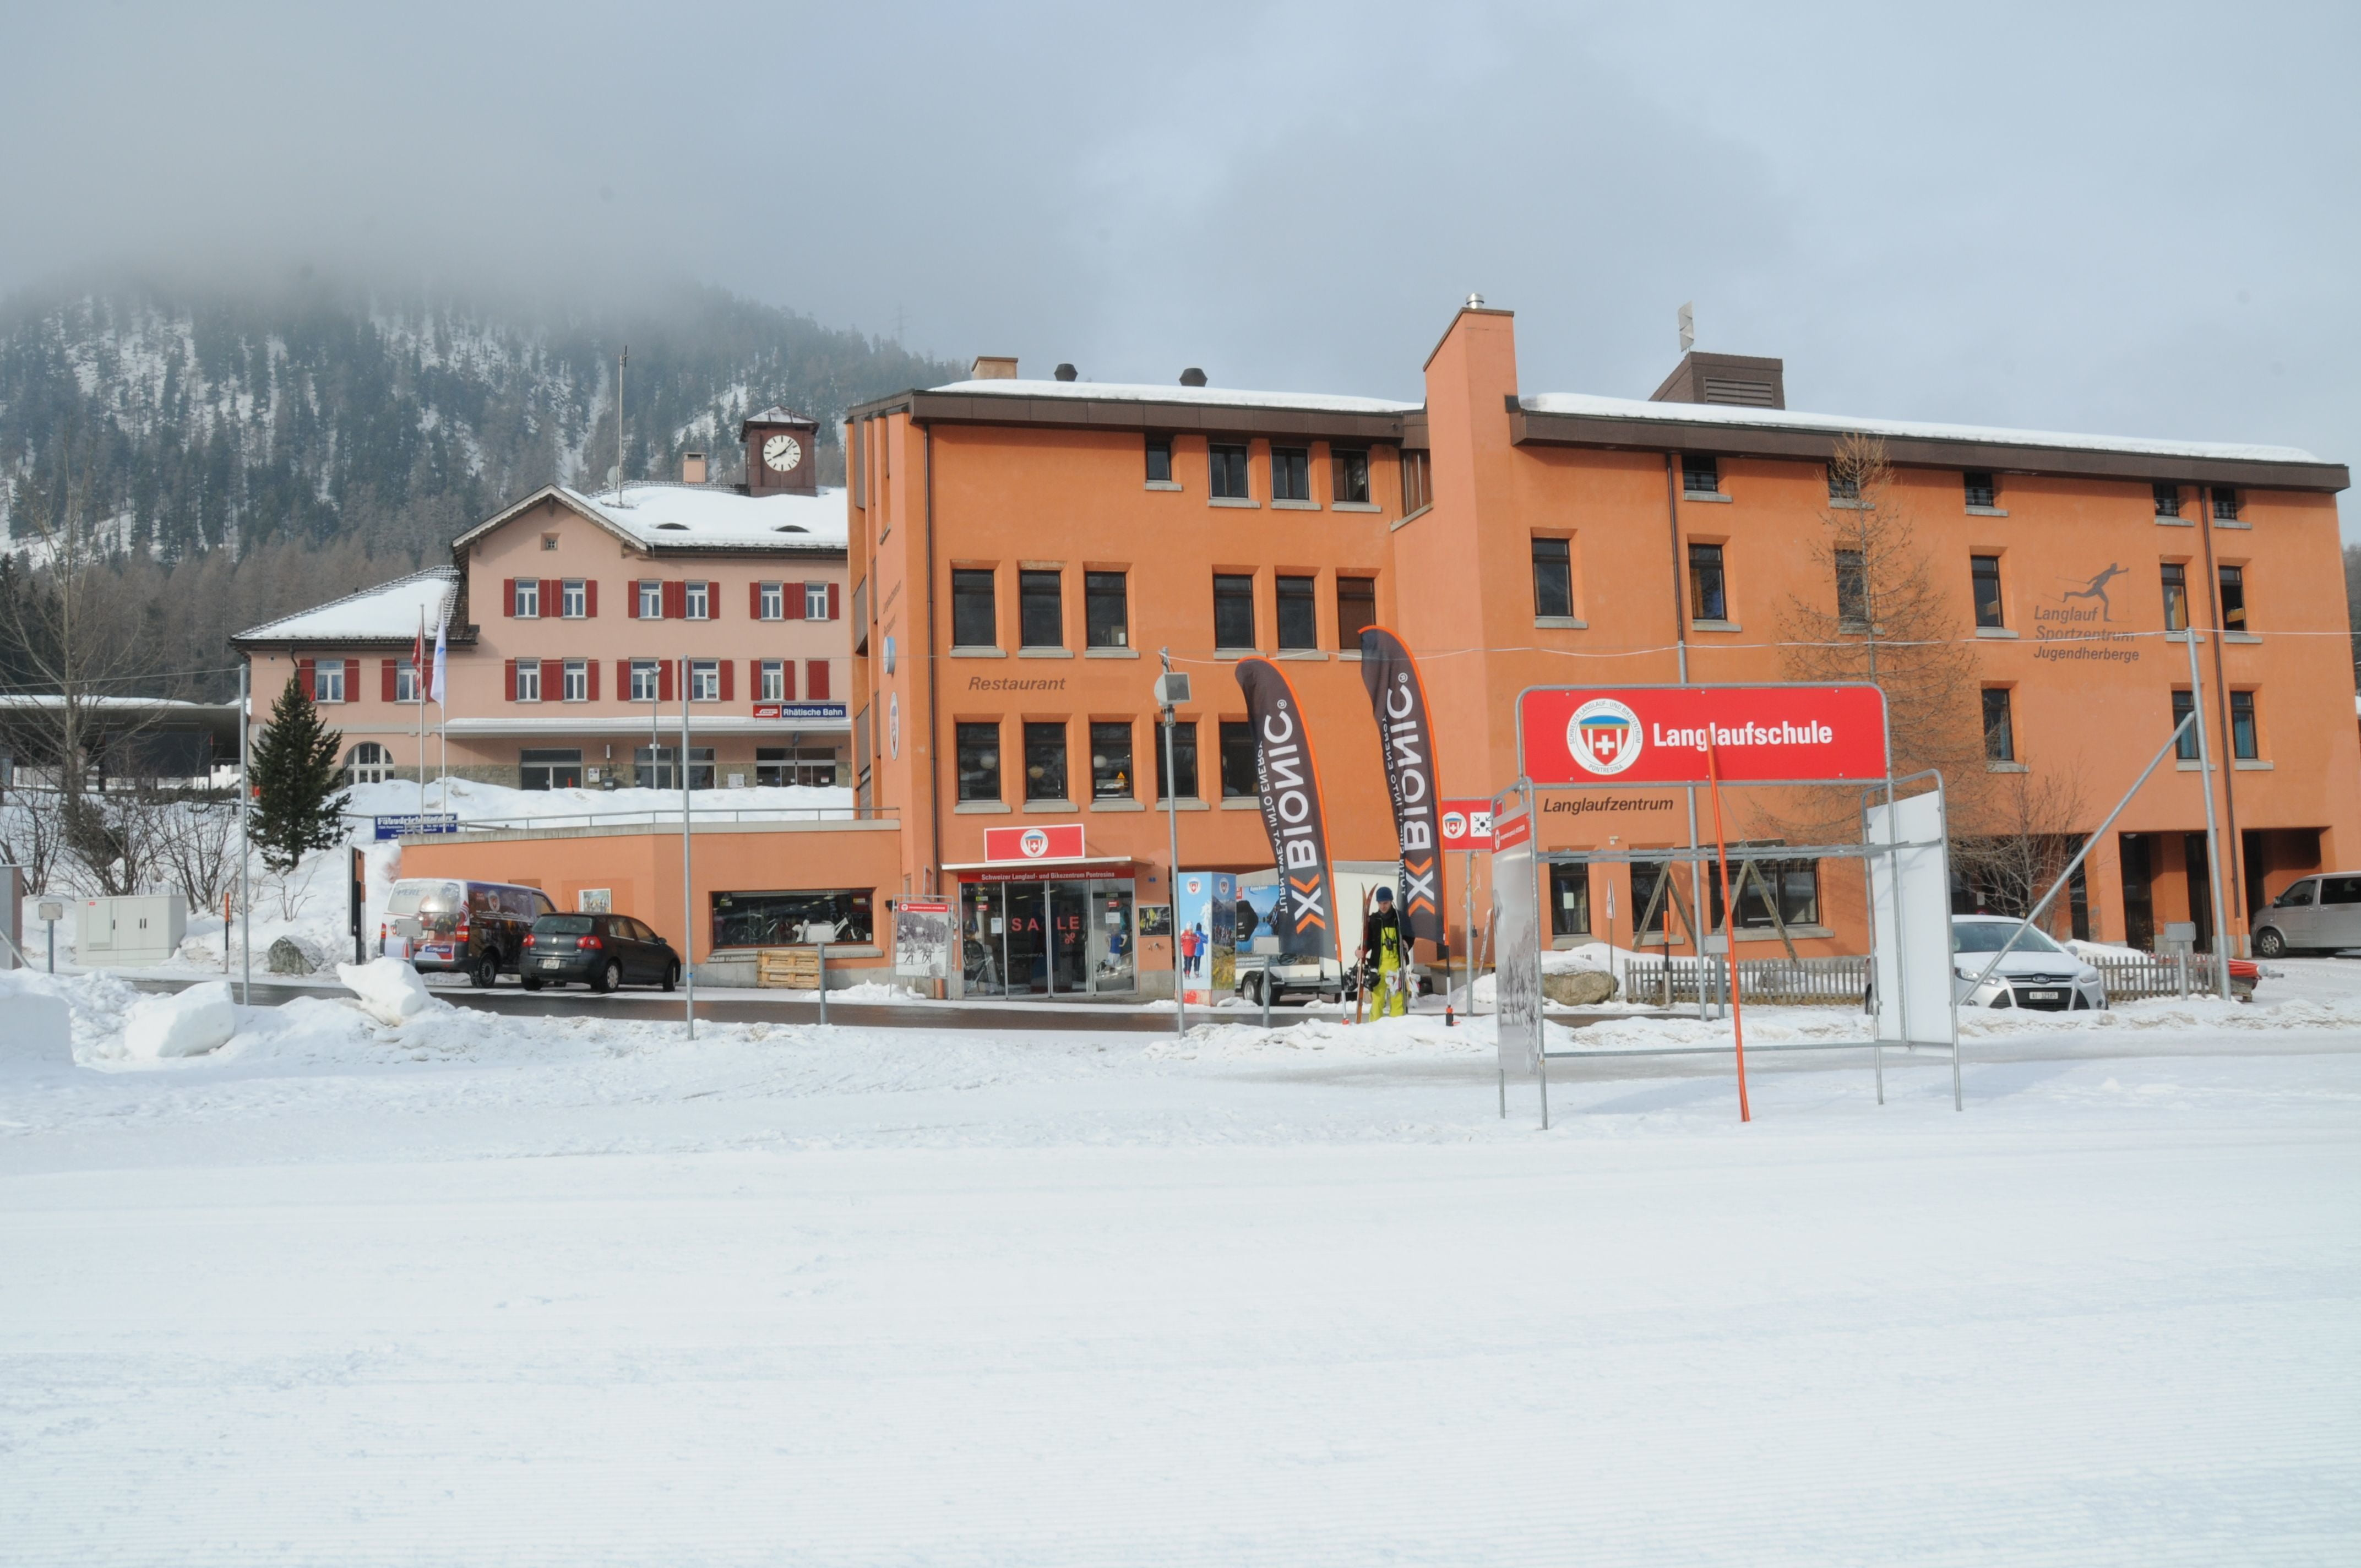 Corss-country ski center